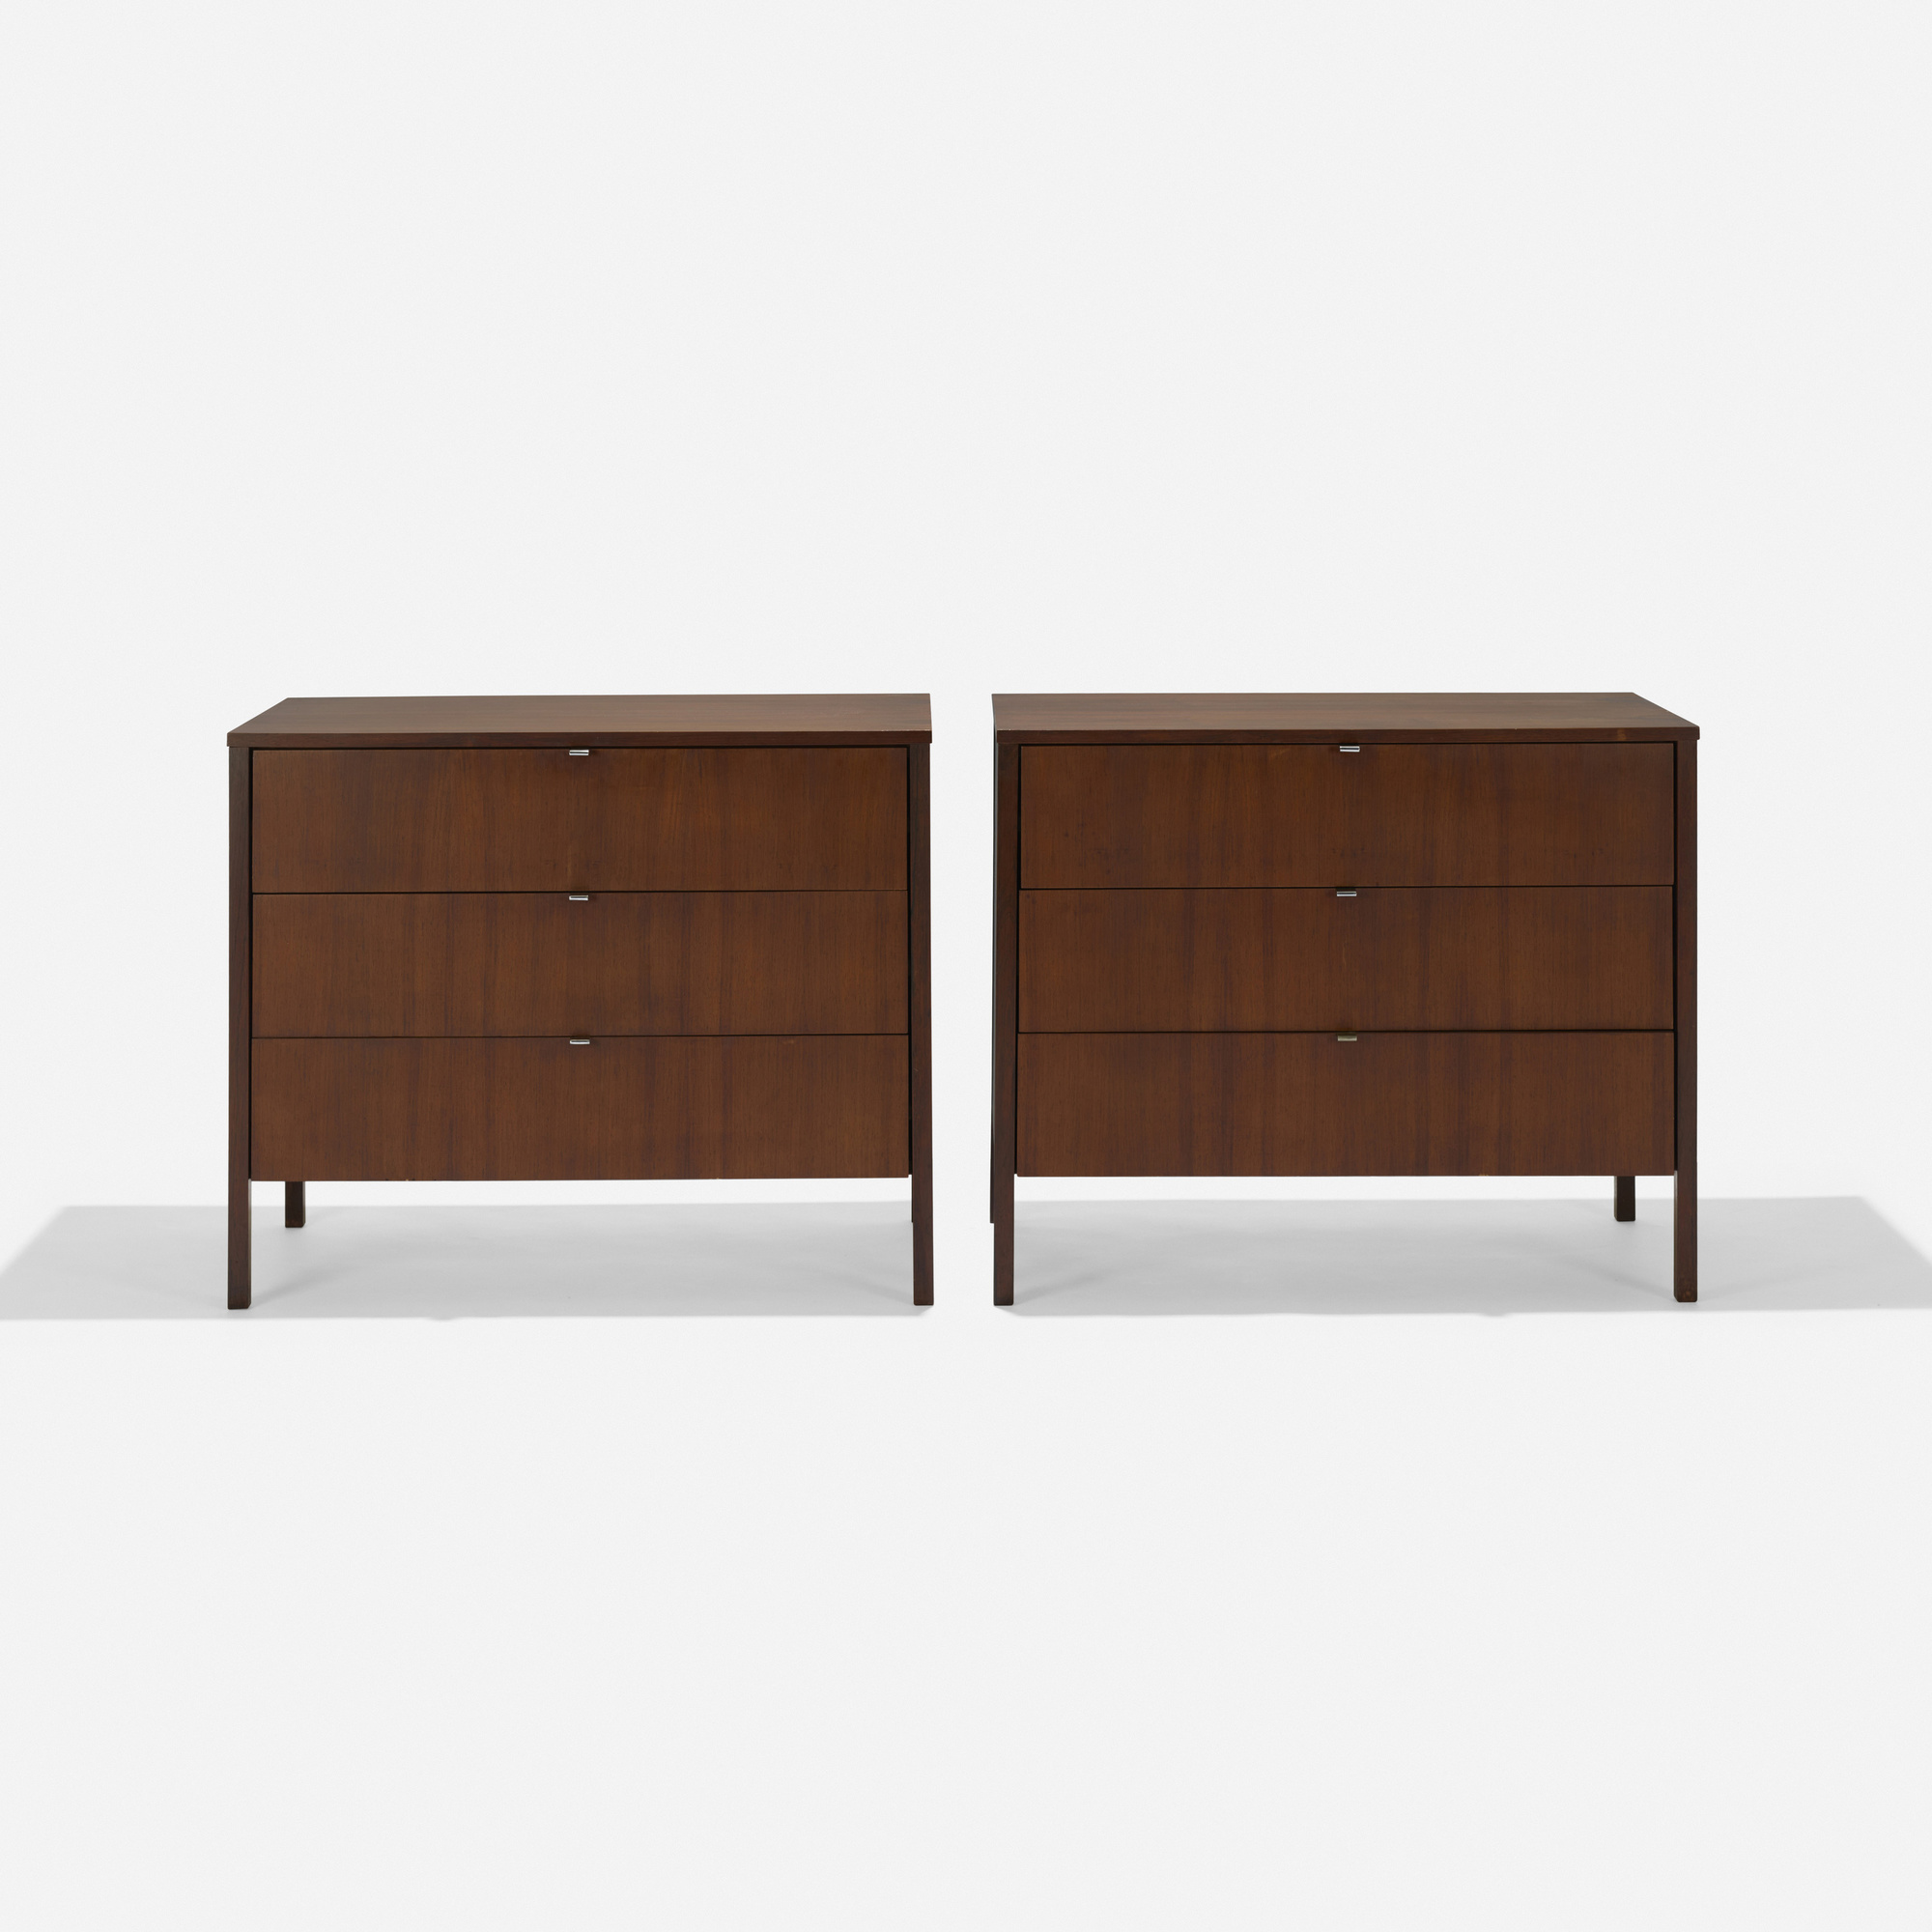 216: Florence Knoll / cabinets model 323-2, pair (2 of 2)